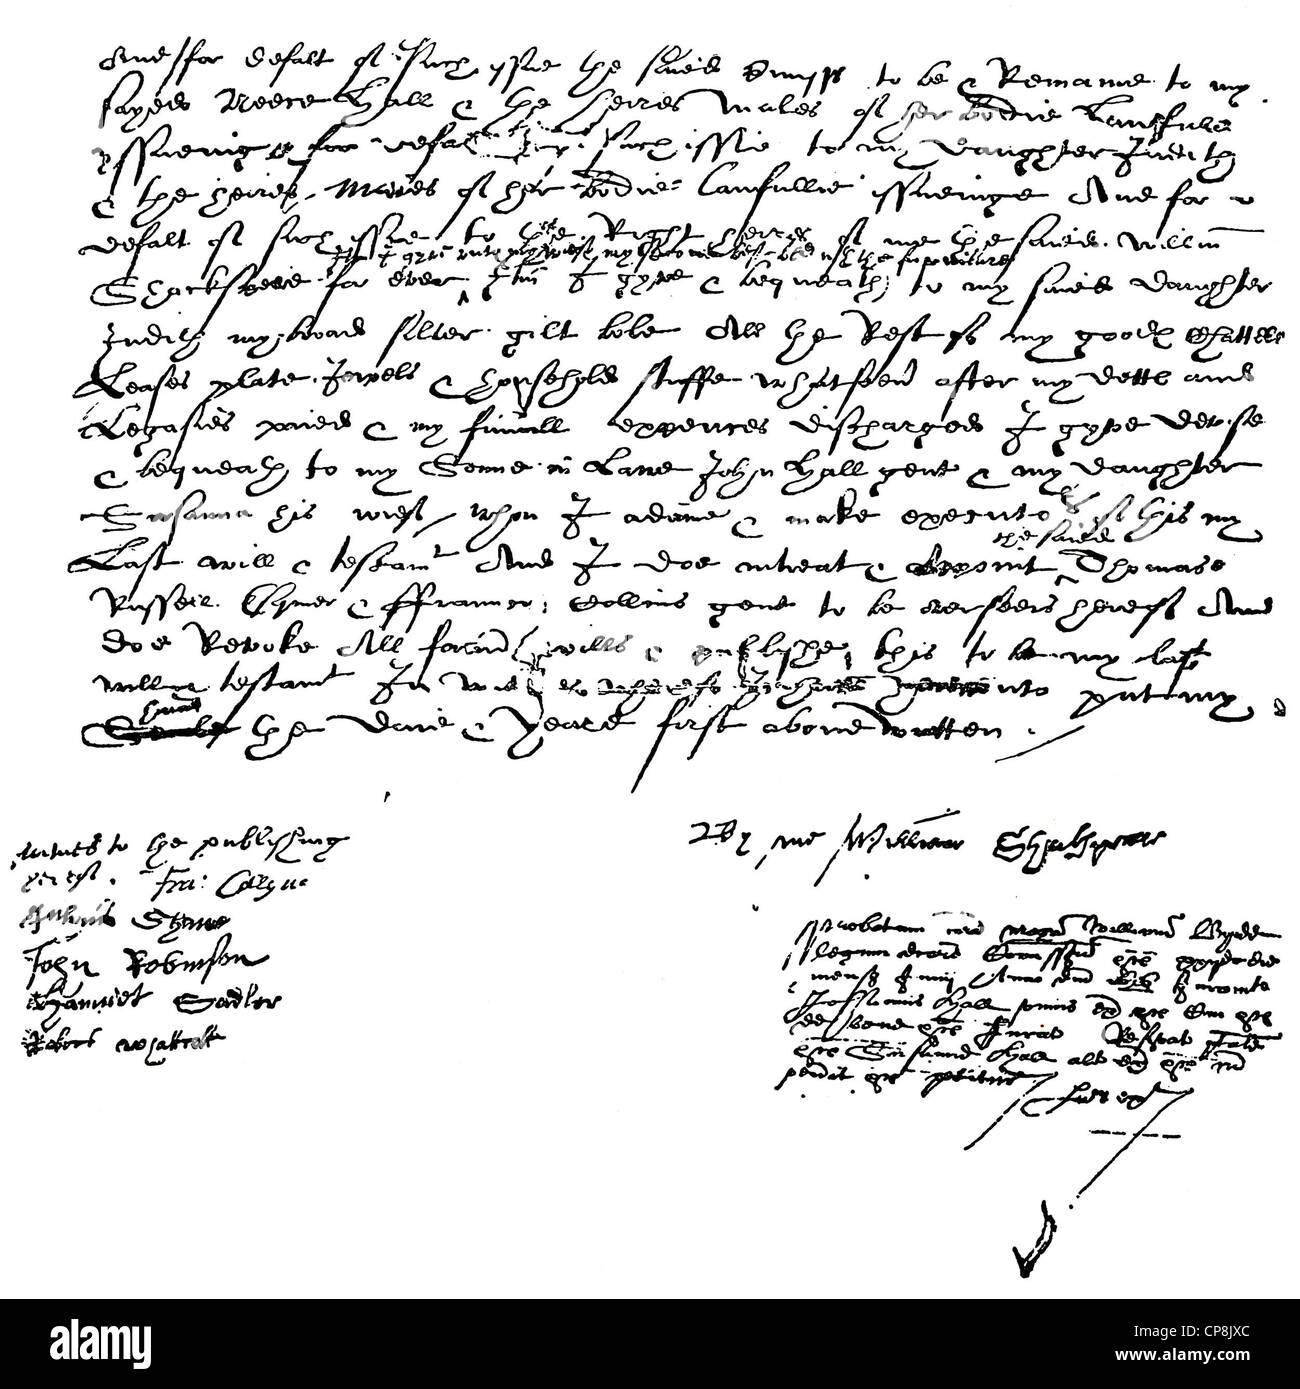 Historical manuscript, Testament of William Shakespeare, 1564 - 1616, an English playwright, poet and actor, Historische - Stock Image